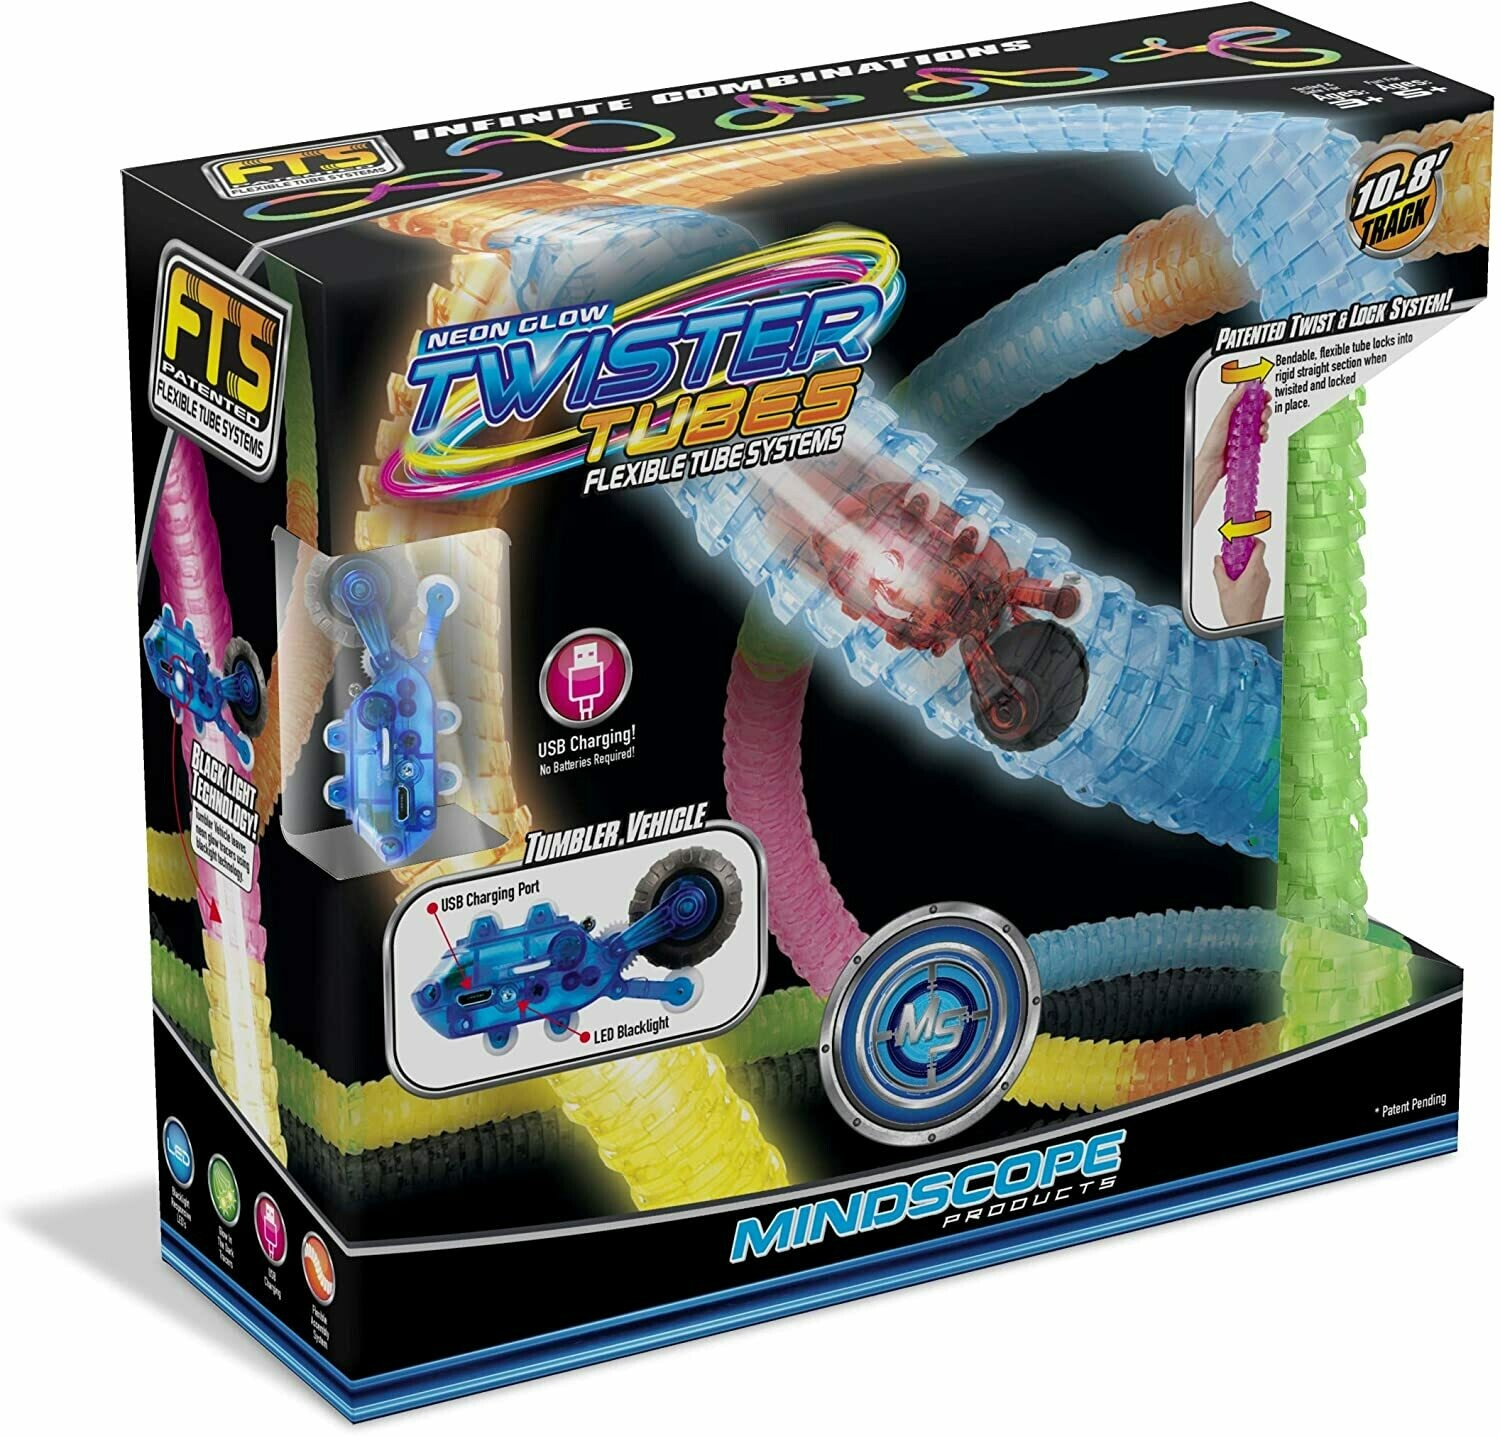 SALE: Twister Tubes - org. $32